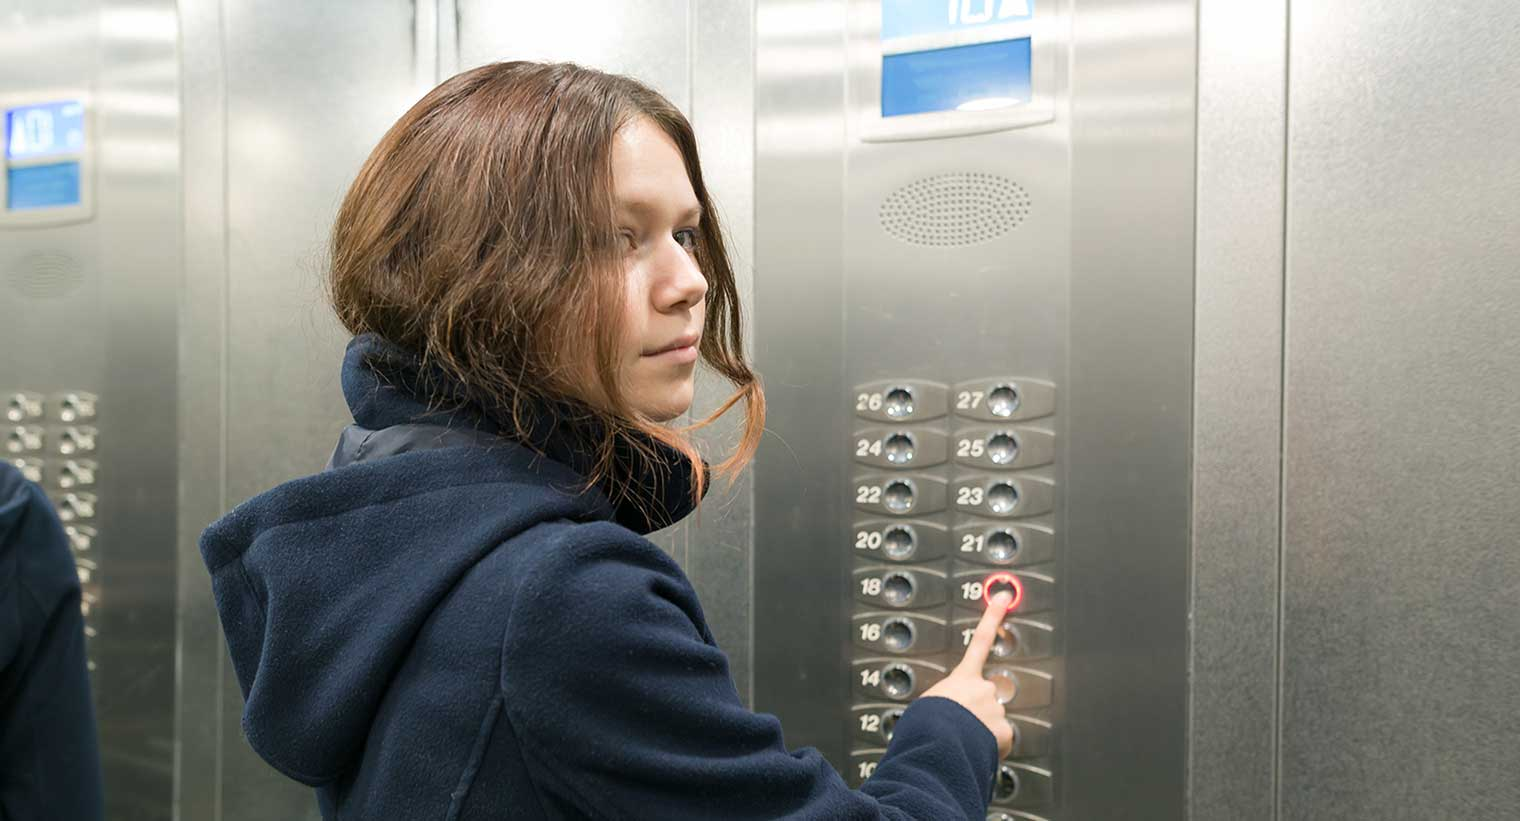 Young teen pushing elevator control